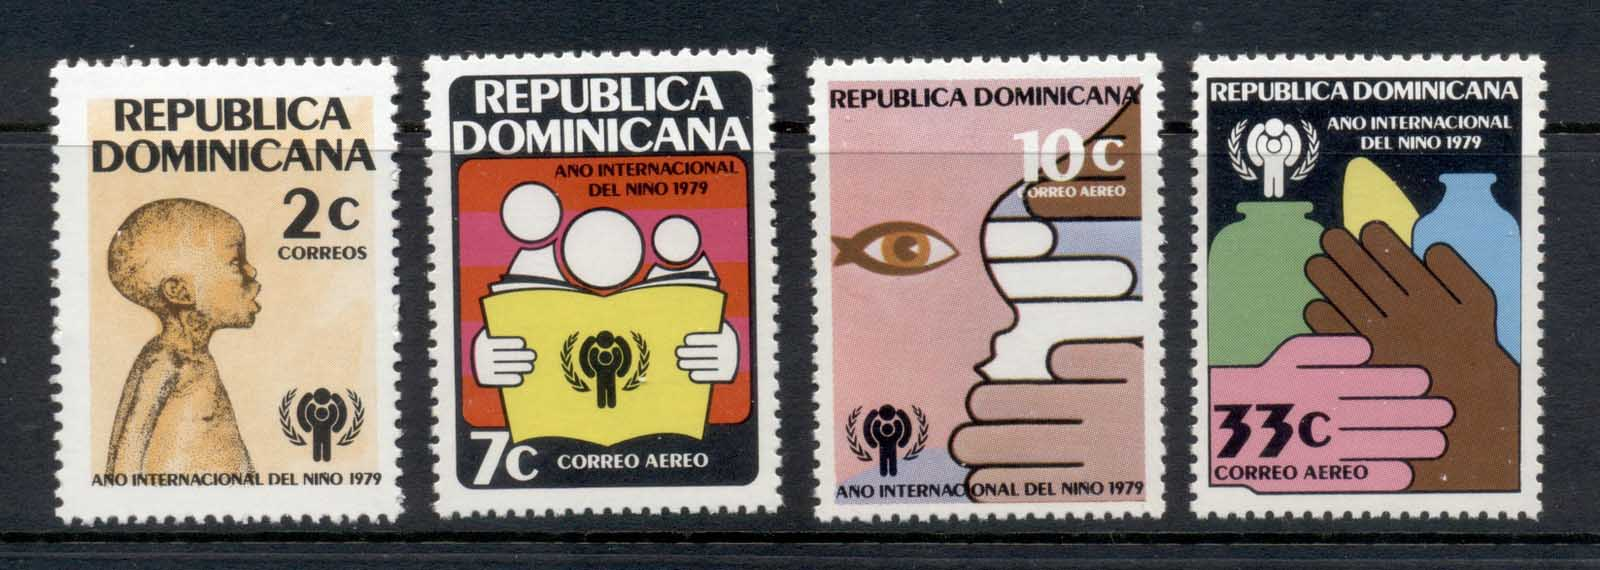 Dominican Republic 1979 IYC International year of the Child MUH